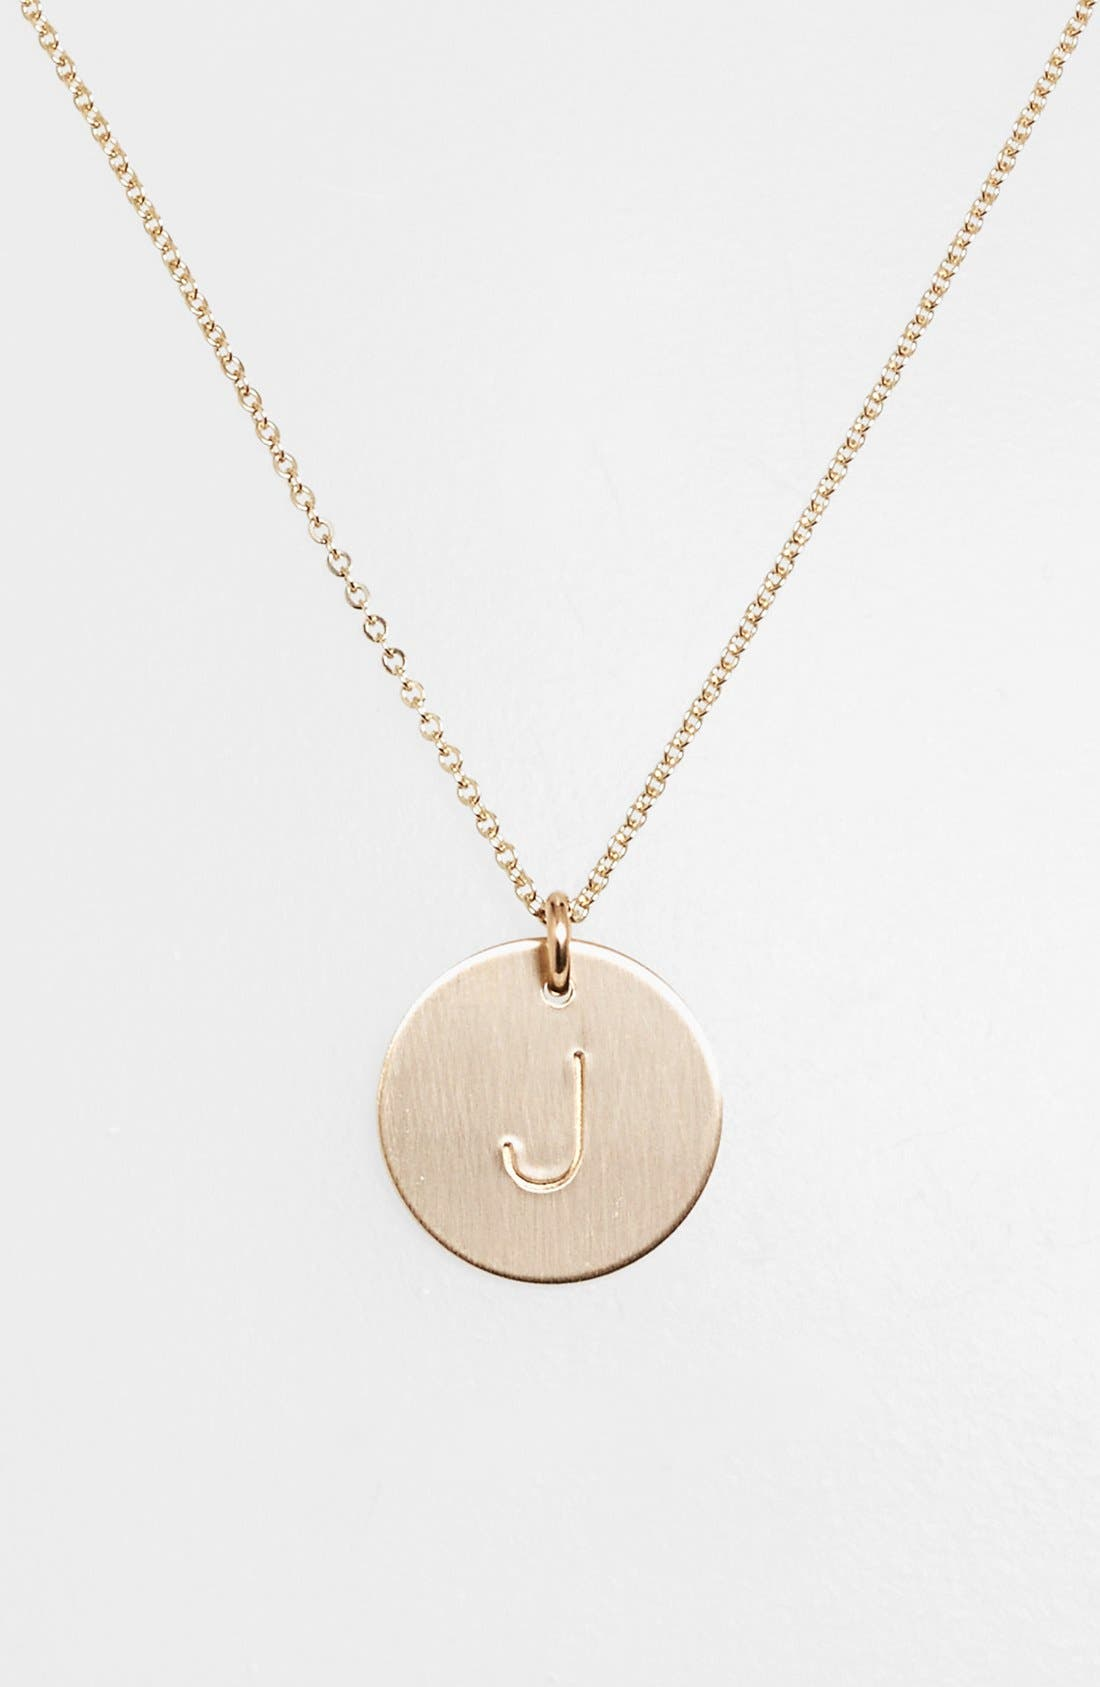 Main Image - Nashelle 14k-Gold Fill Initial Disc Necklace